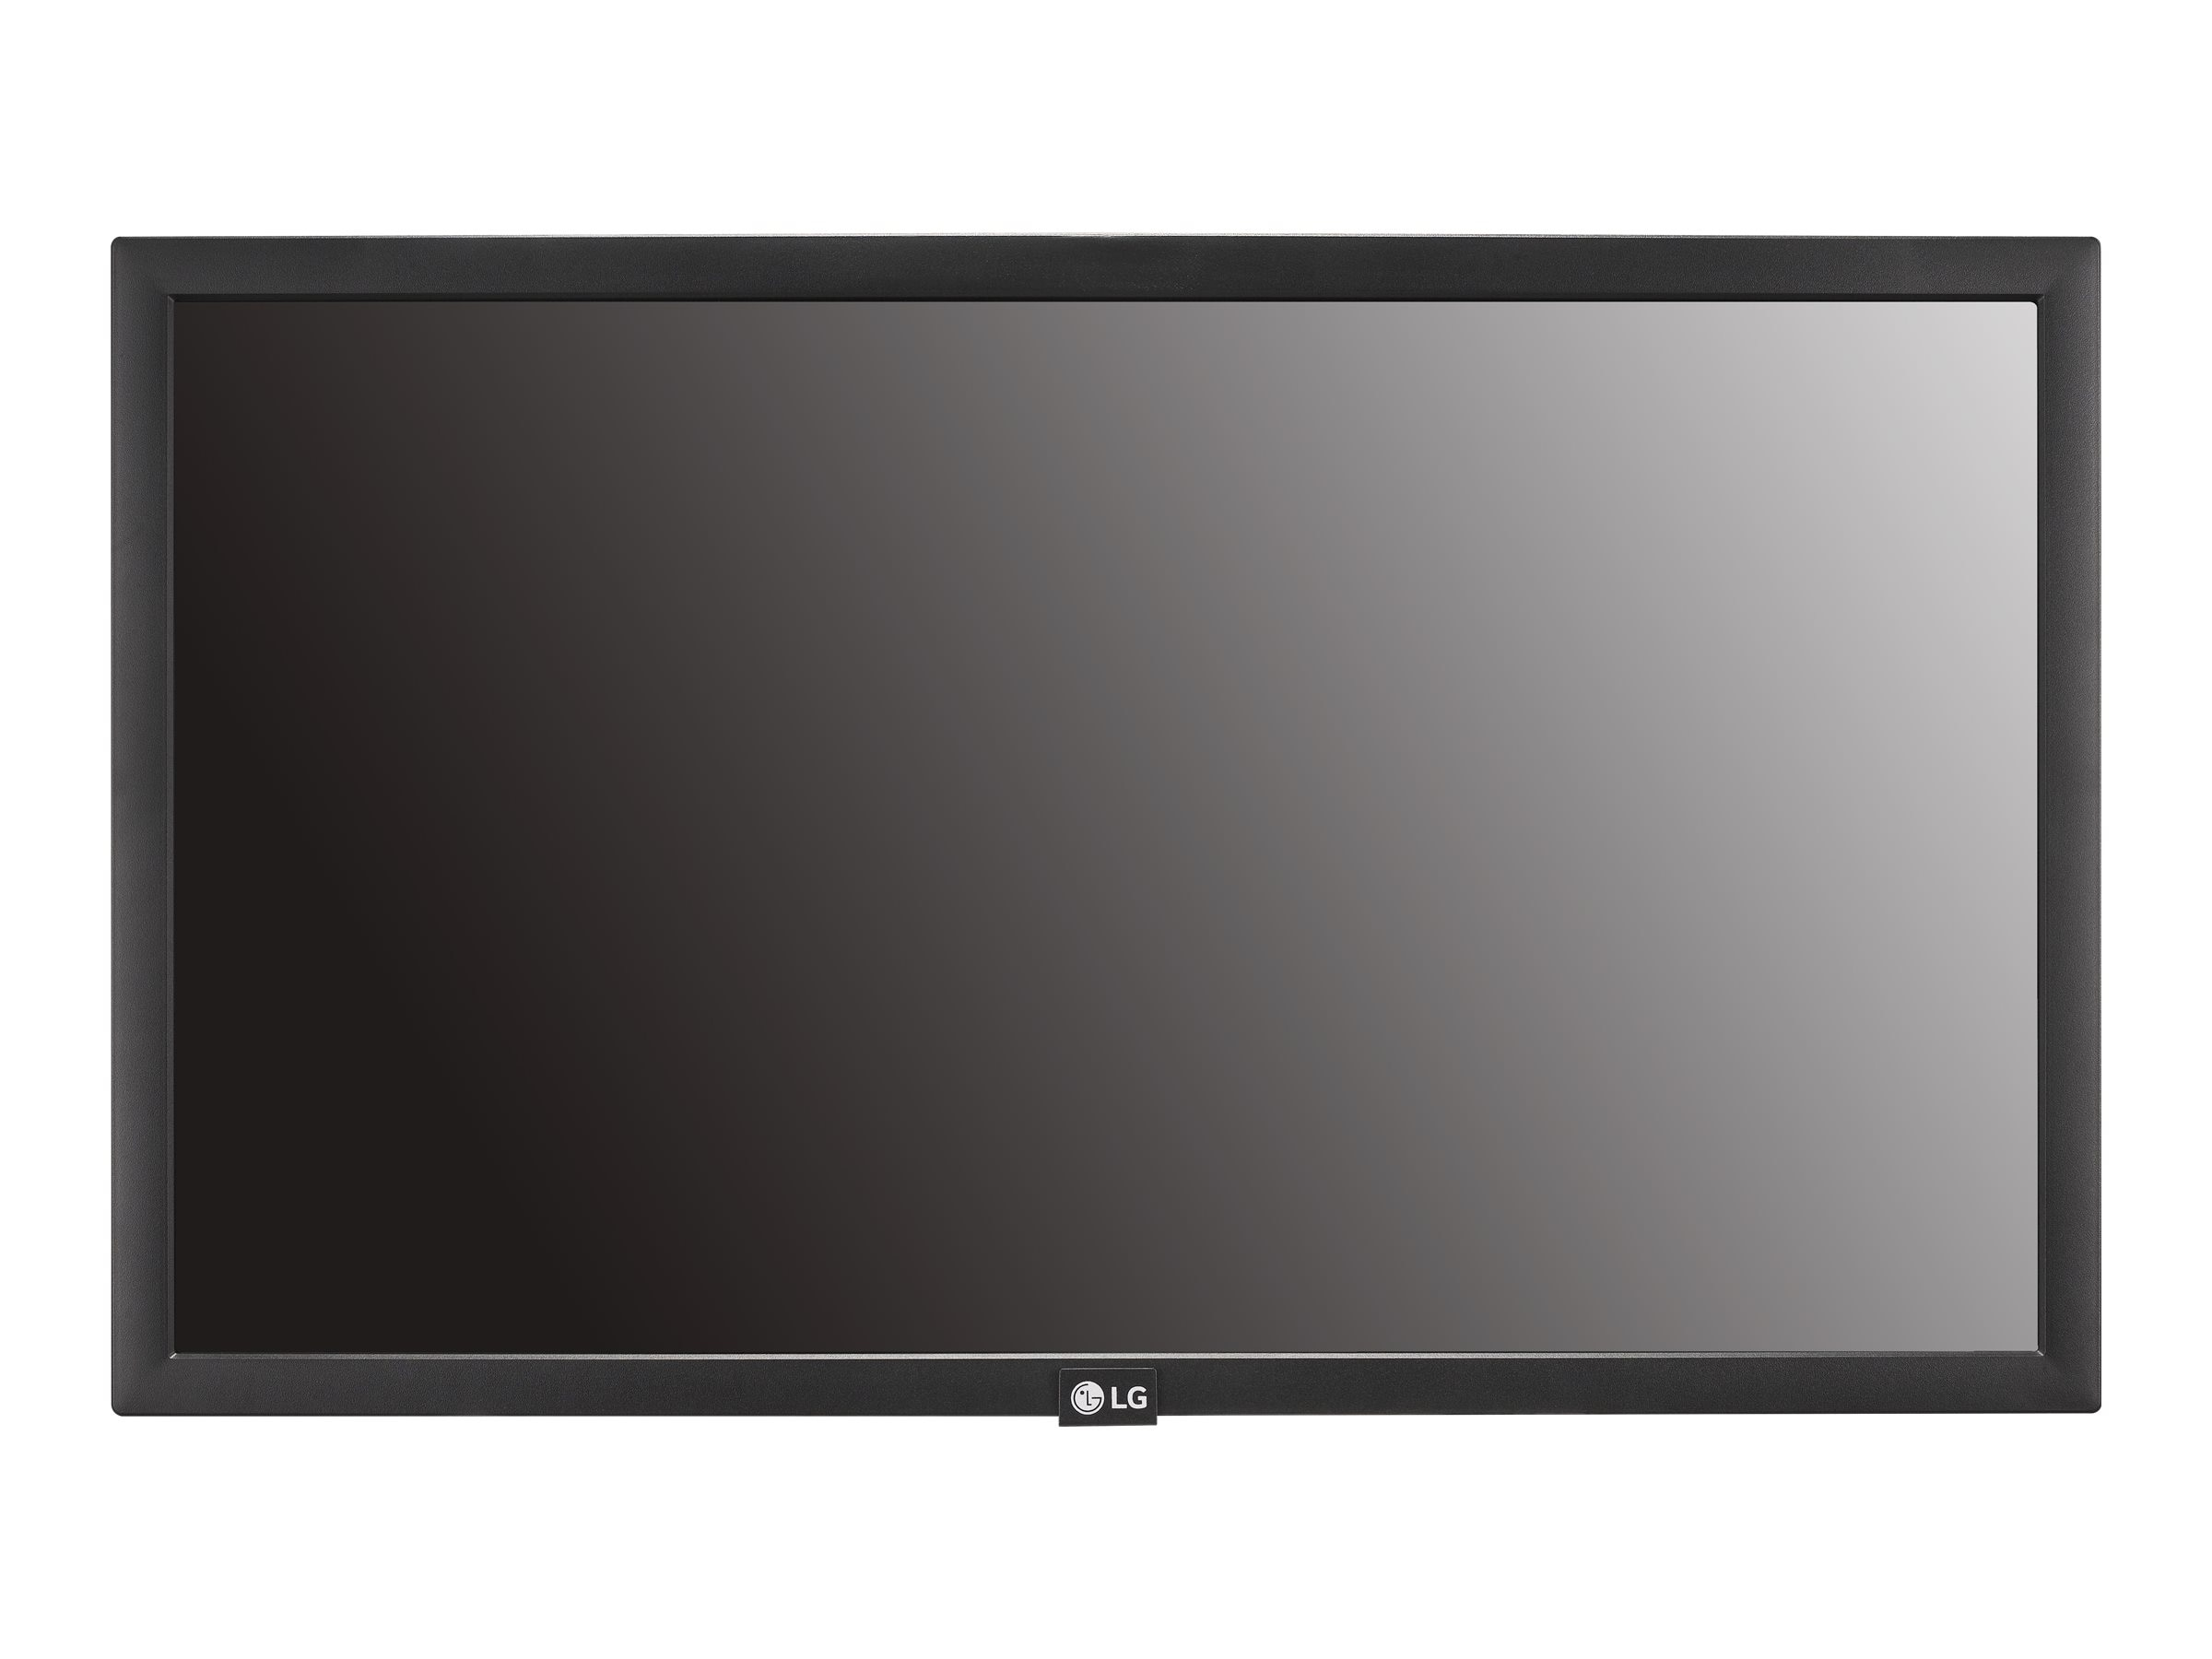 LG 22 SM3B-B Full HD LED-LCD Display, Black